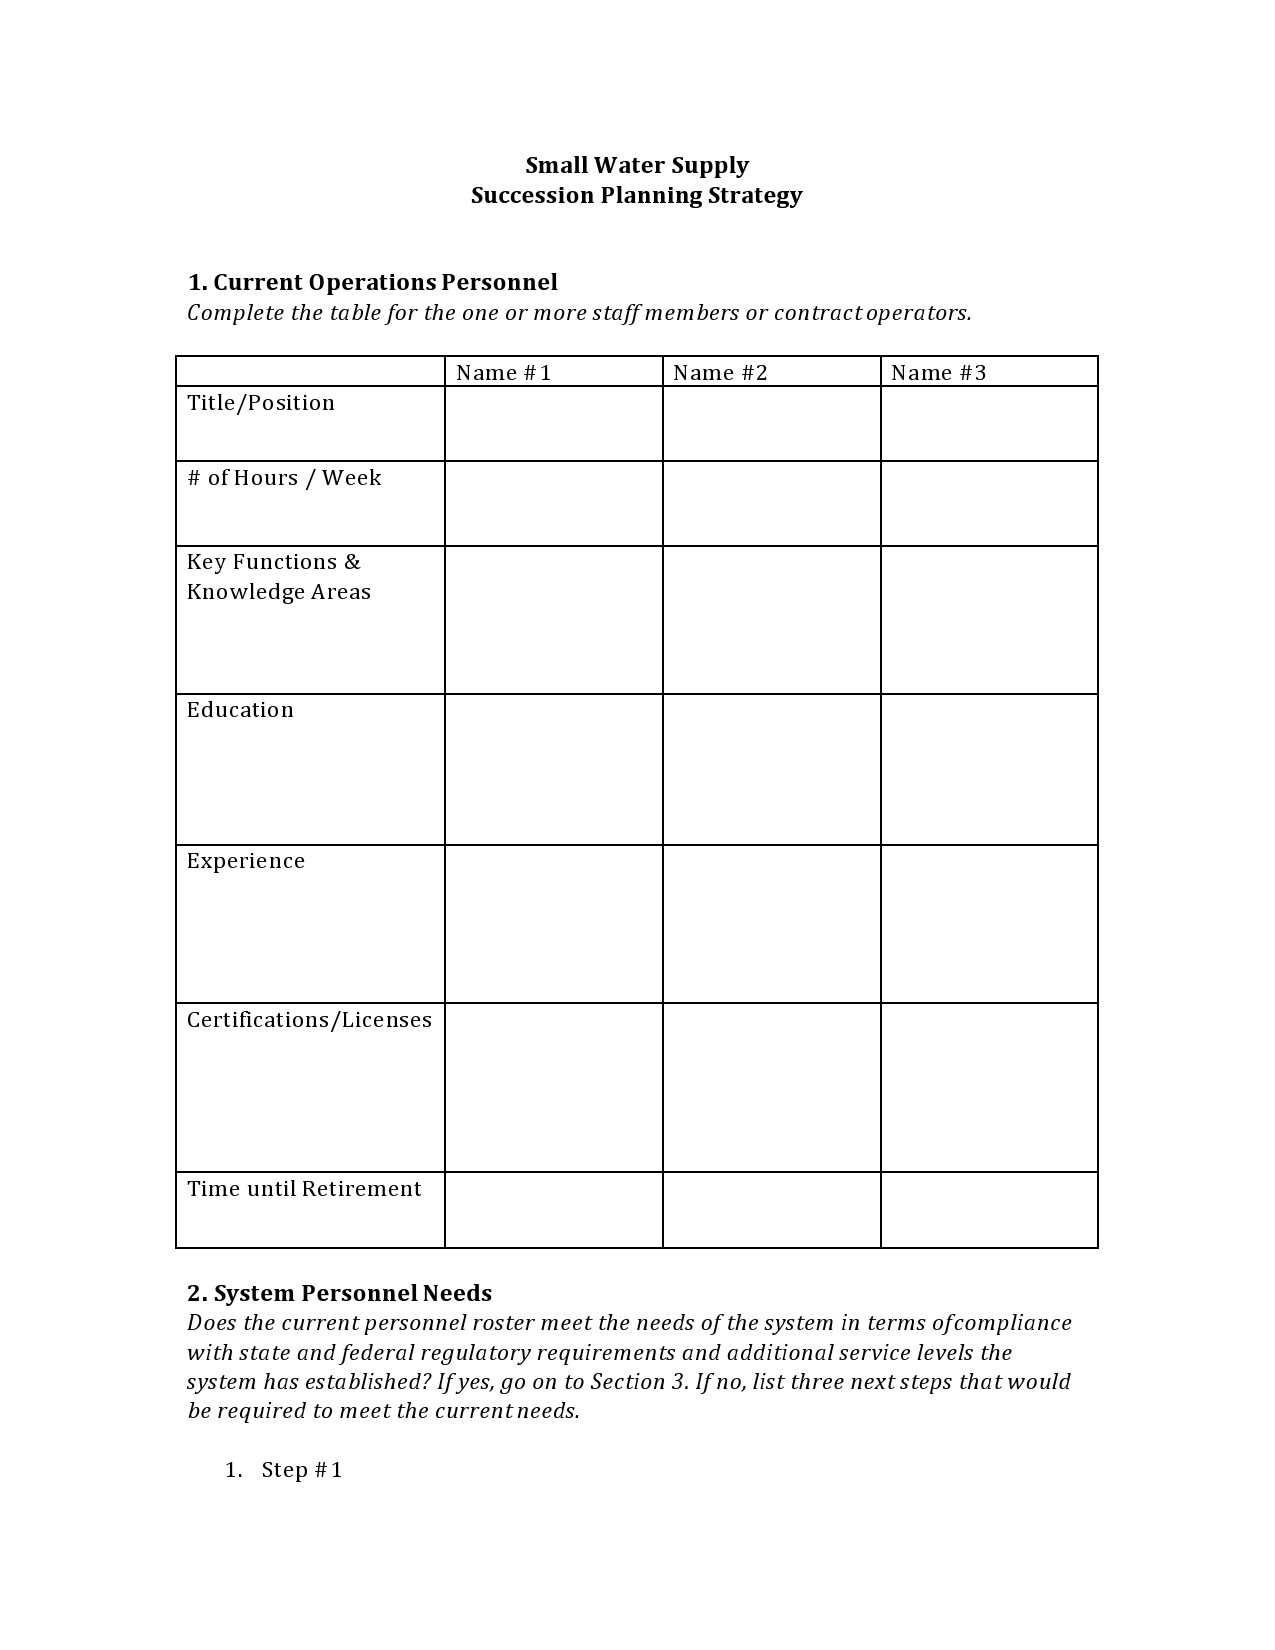 Free succession planning template 16